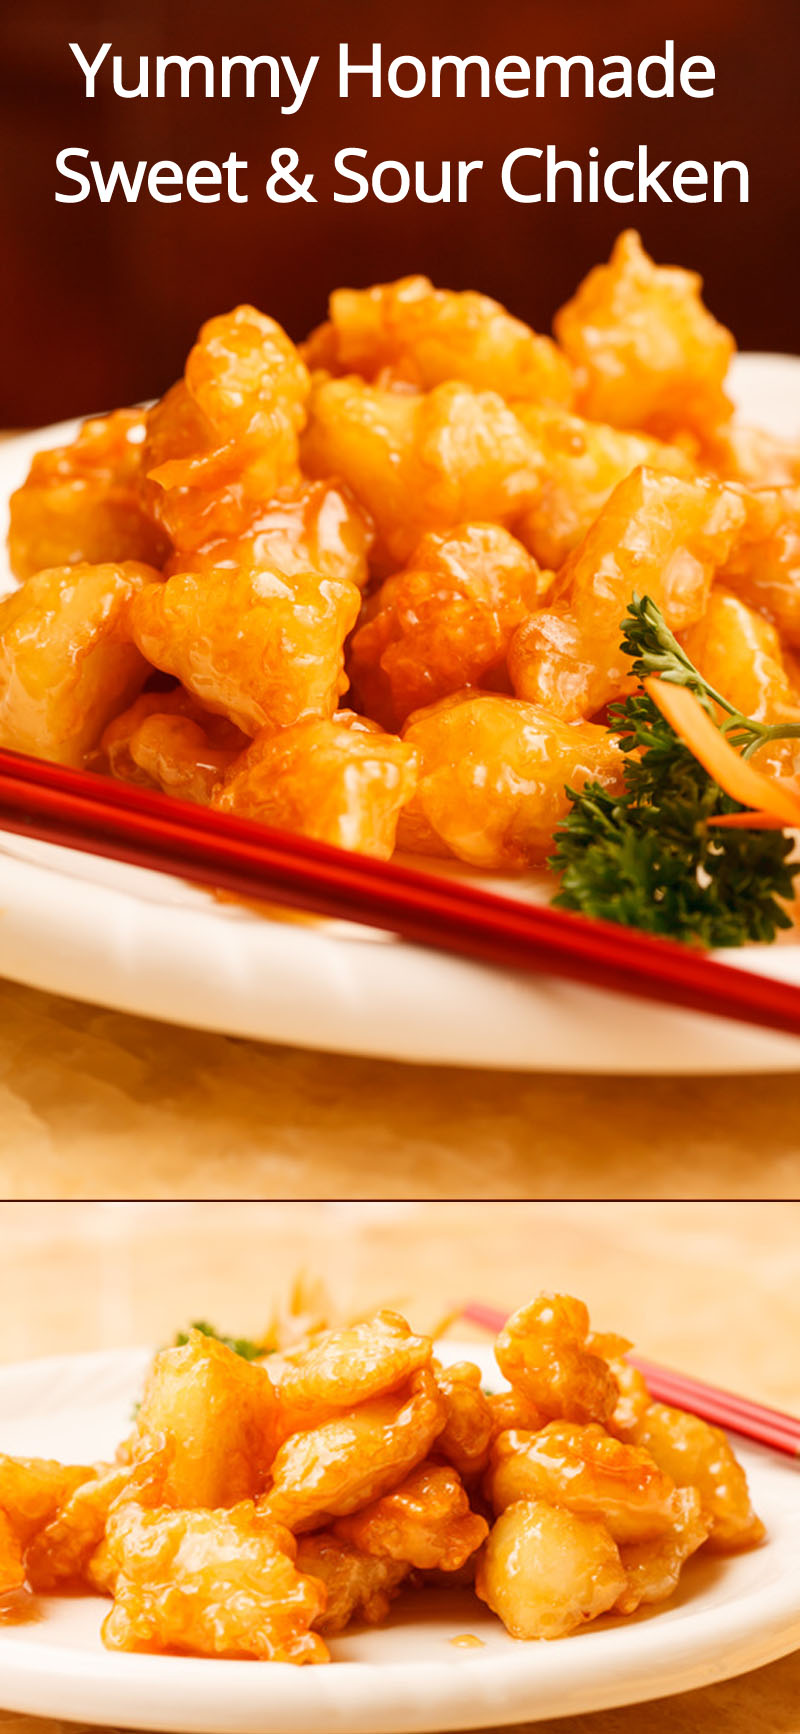 Homemade Sweet & Sour Chicken Recipe - make this instead of ordering a Chinese takeout! #chinese #chicken #sweetandsour